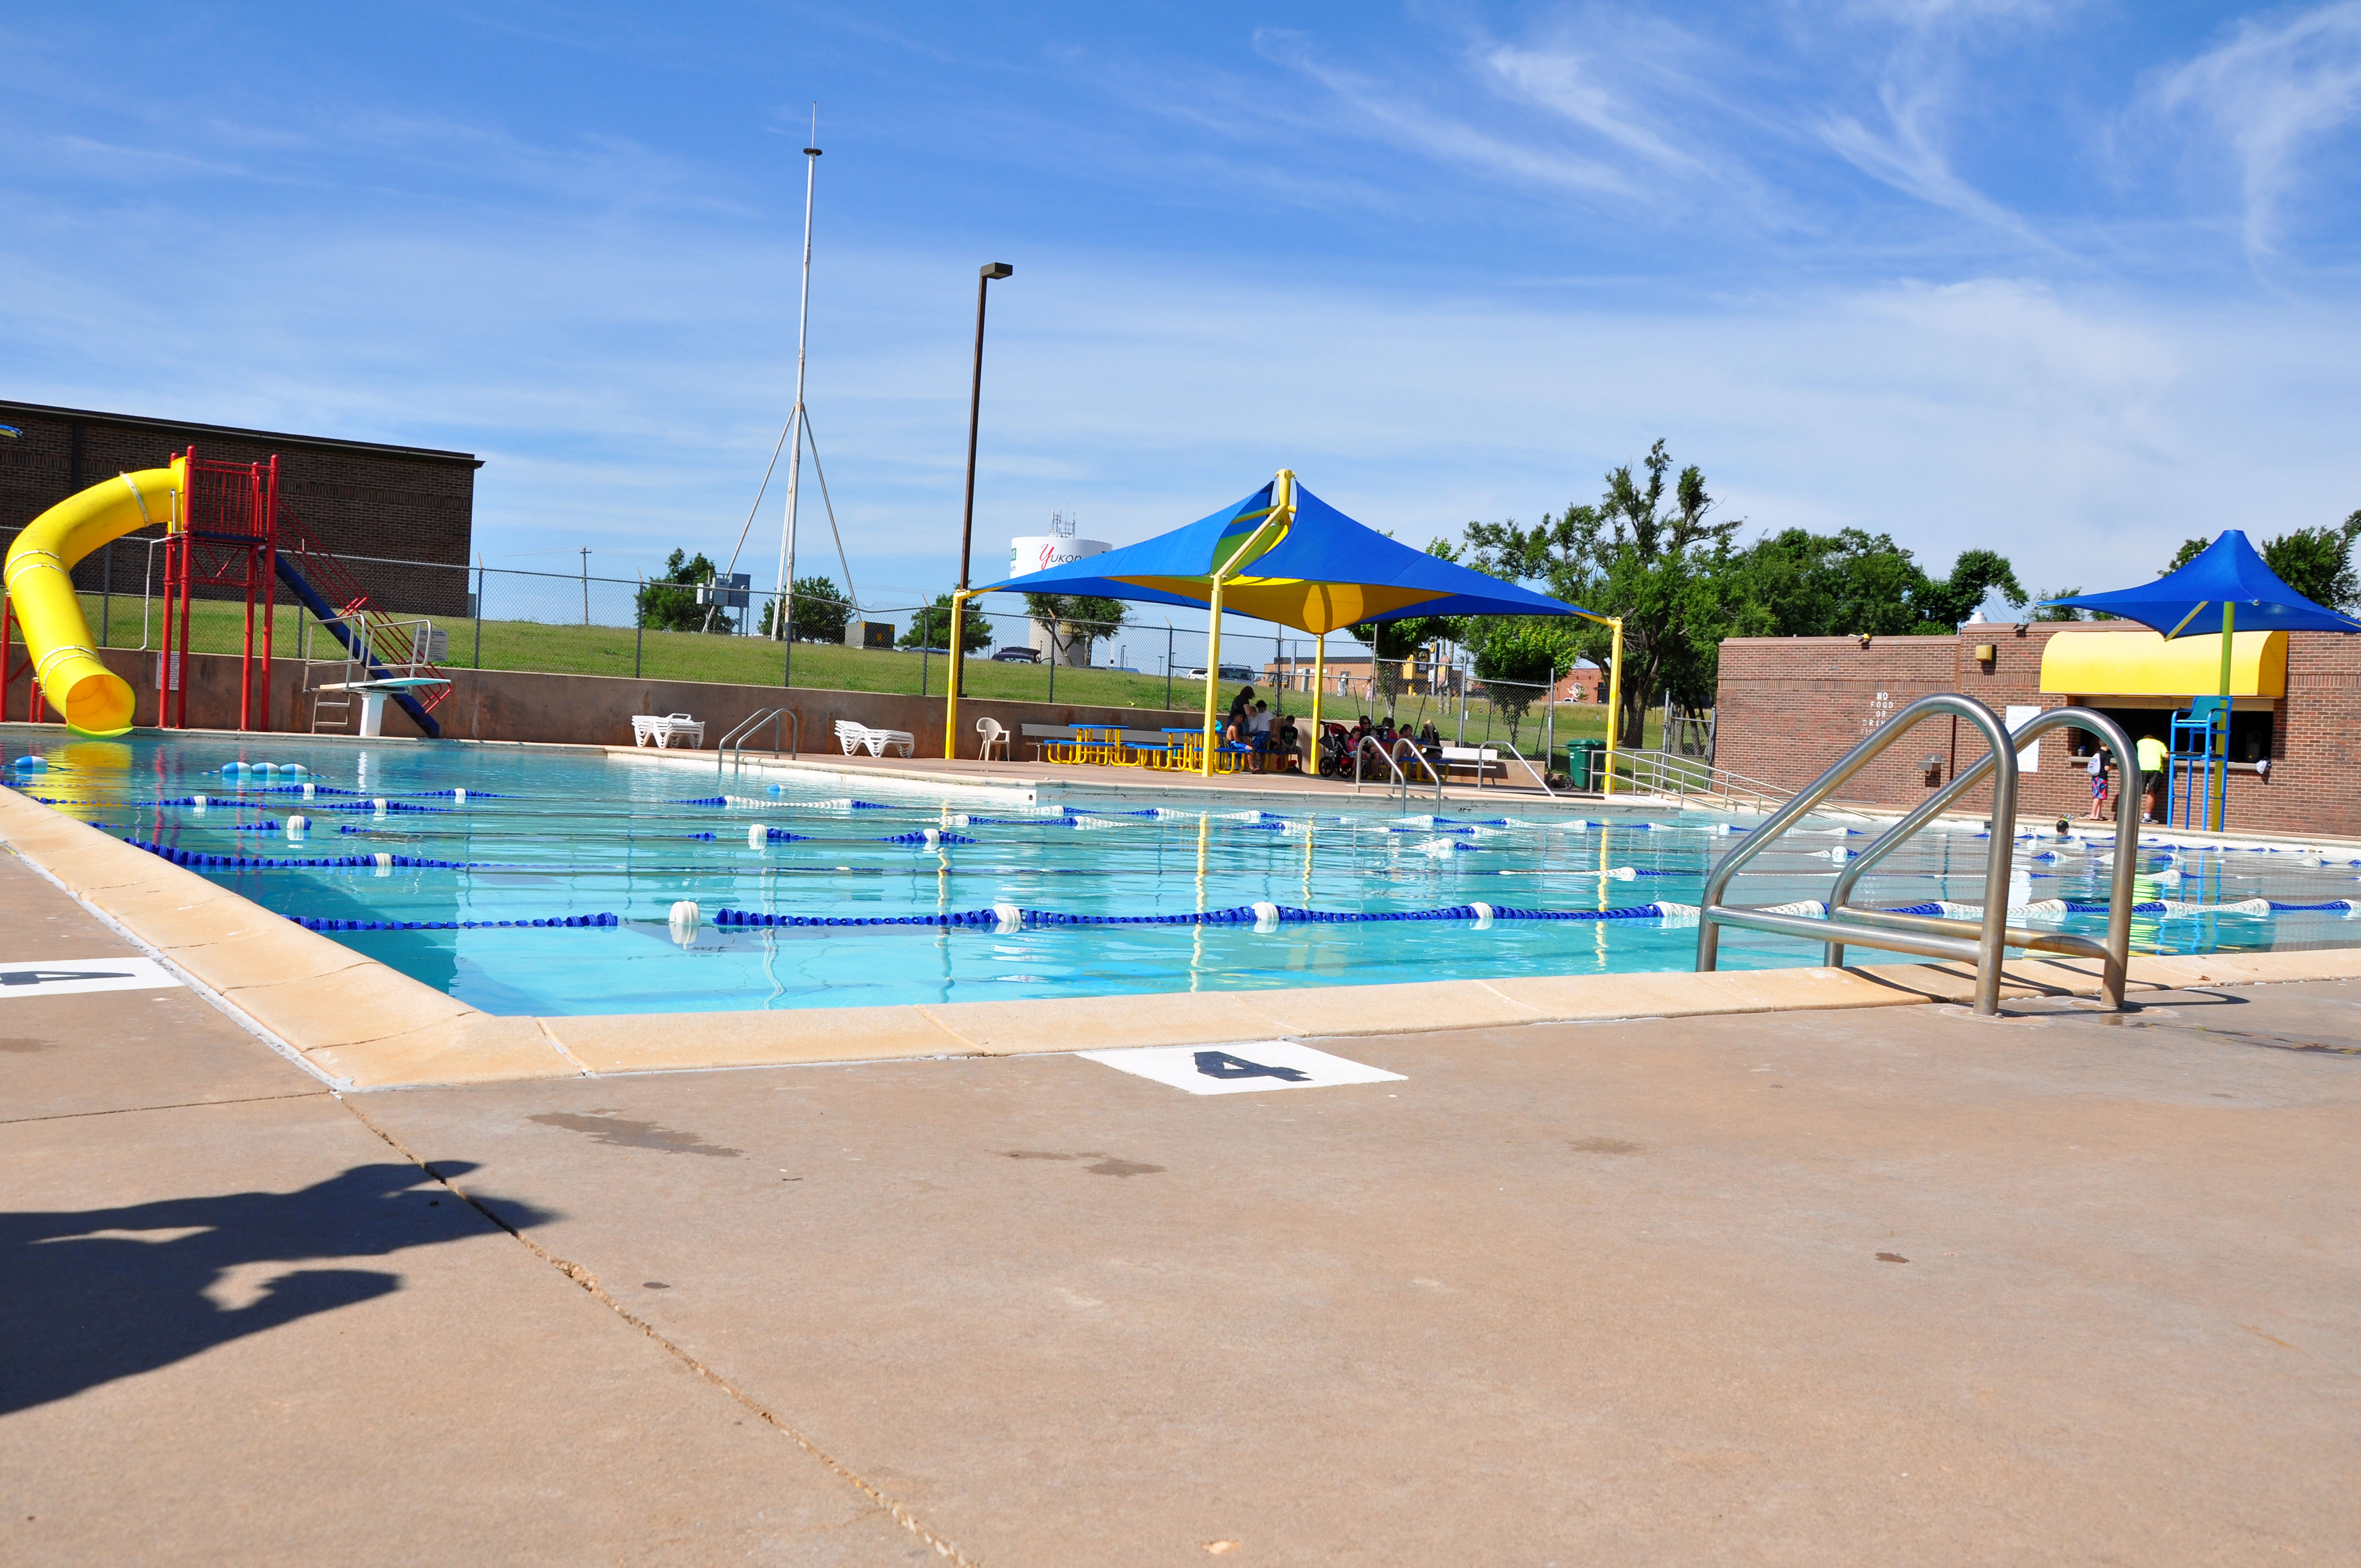 City Splash Pool Opens Saturday, June 20